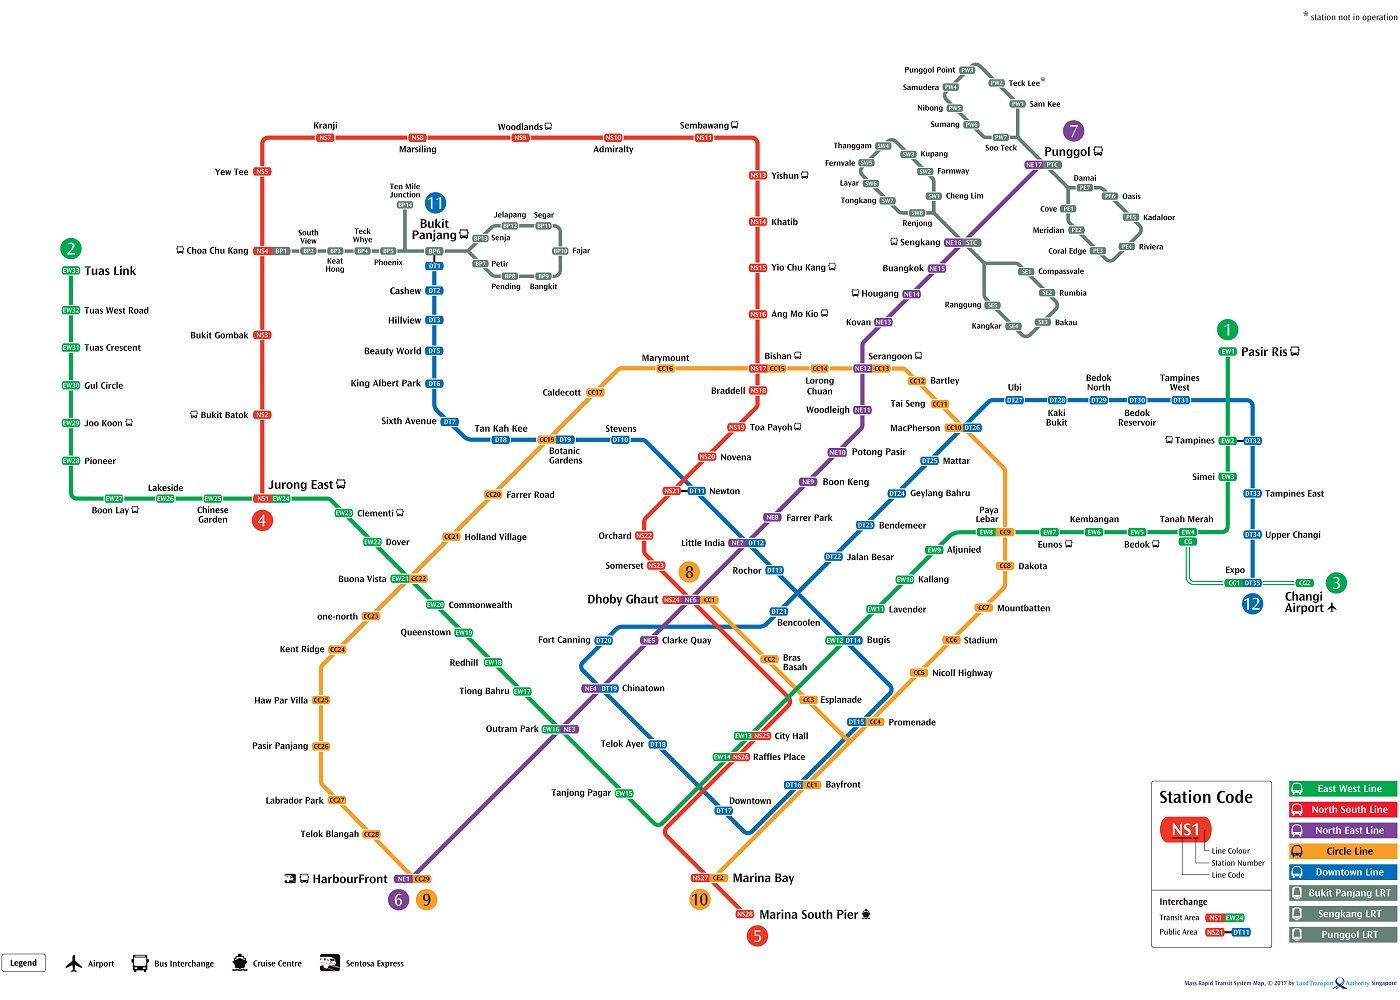 Subway Map Live.Transitlink Eguide Mrt Lrt Enquiry Live In Singapore In 2019